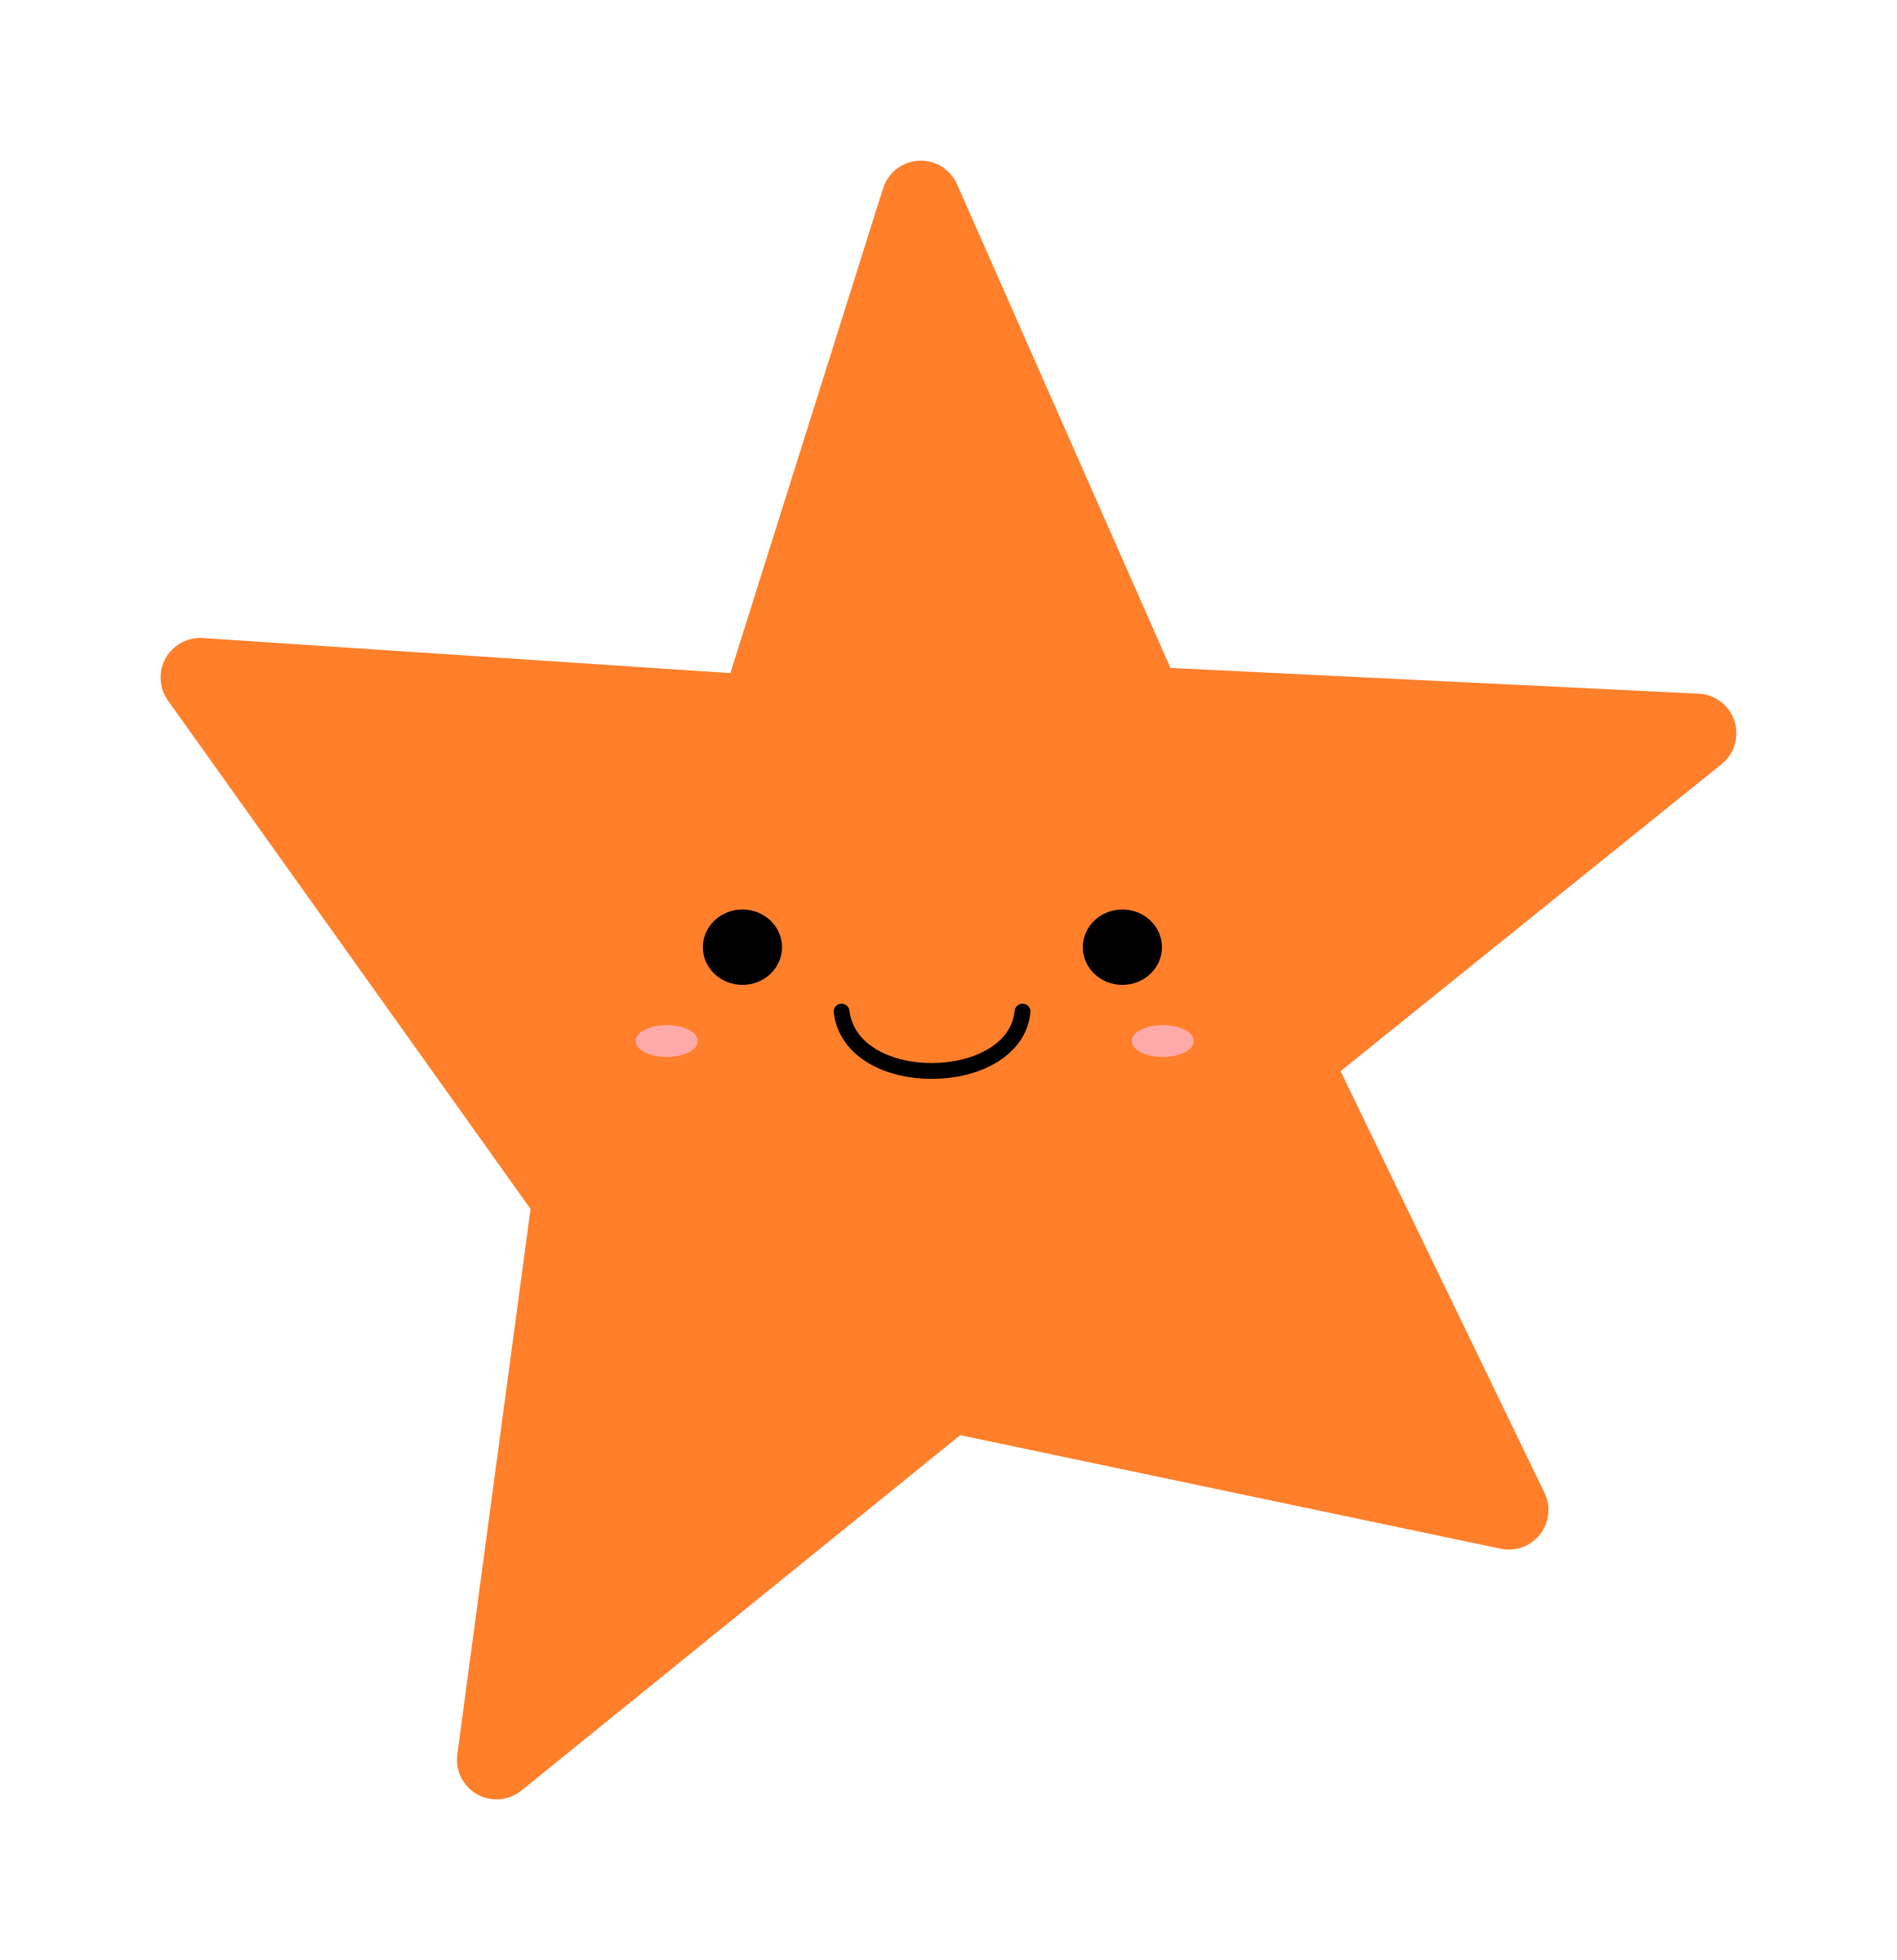 Orange Star vector clipart image.